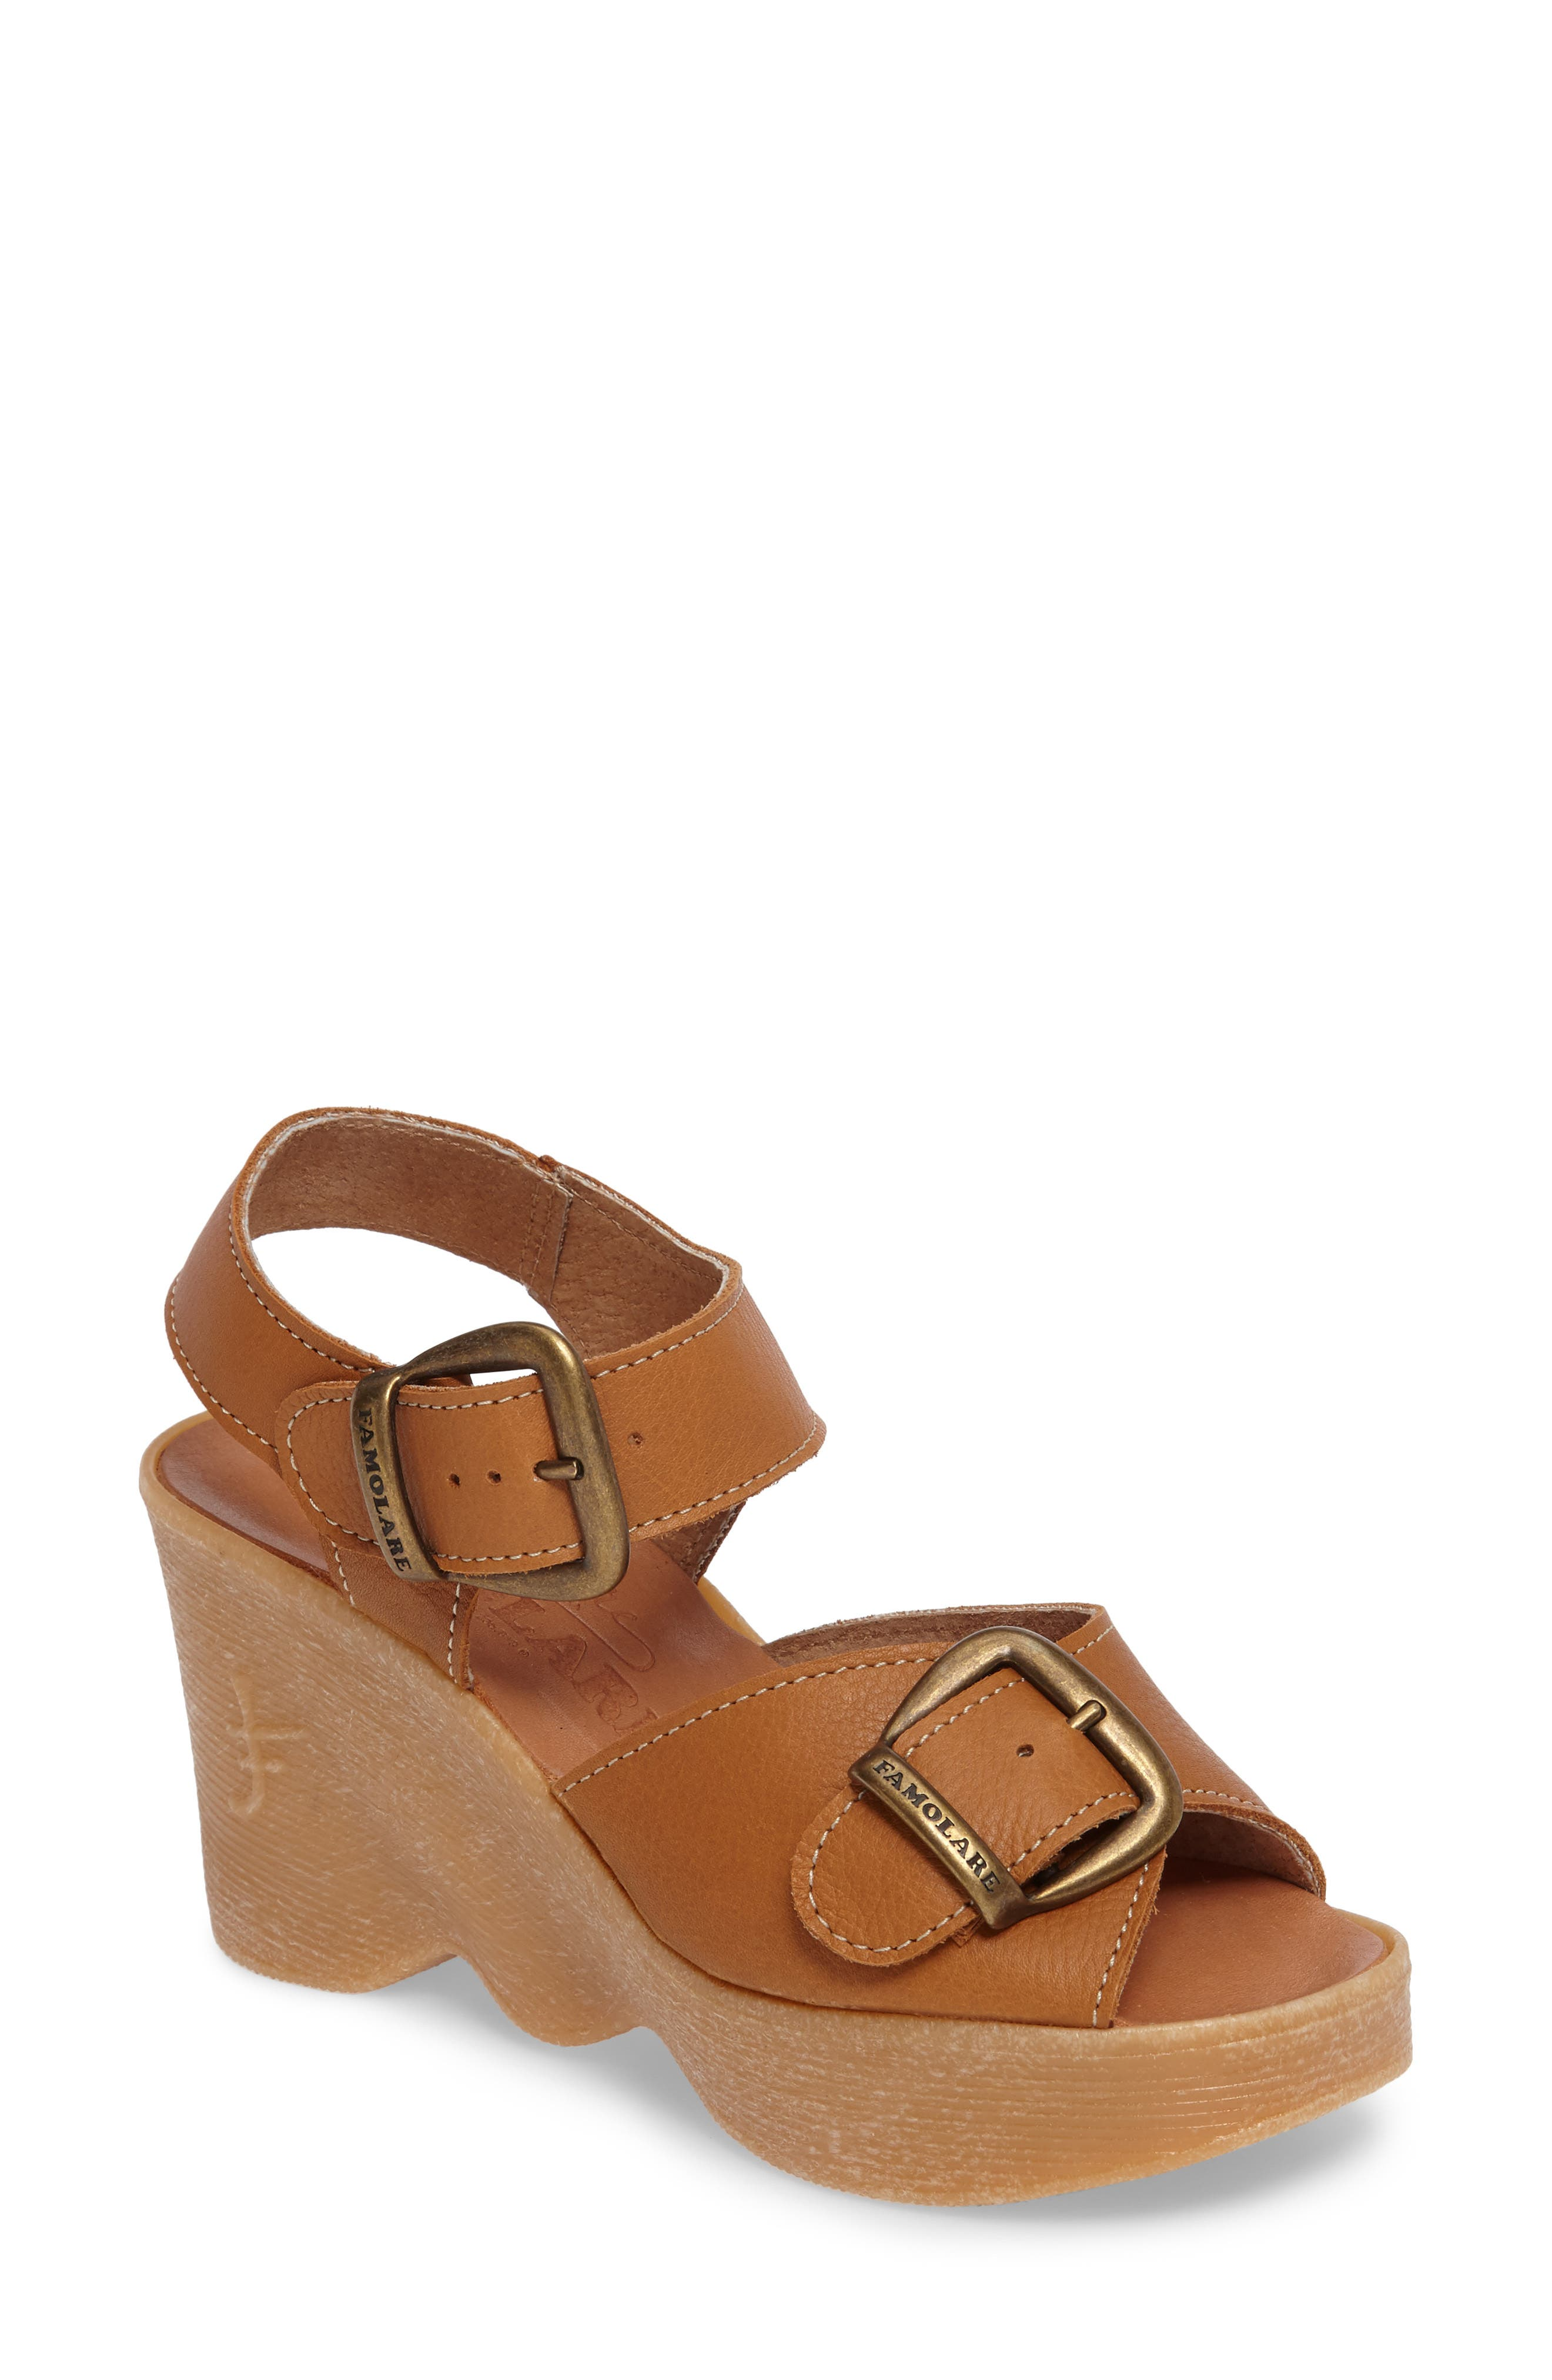 60s Shoes, Boots | 70s Shoes, Platforms, Boots Womens Famolare Double Vision Wedge Sandal $167.95 AT vintagedancer.com